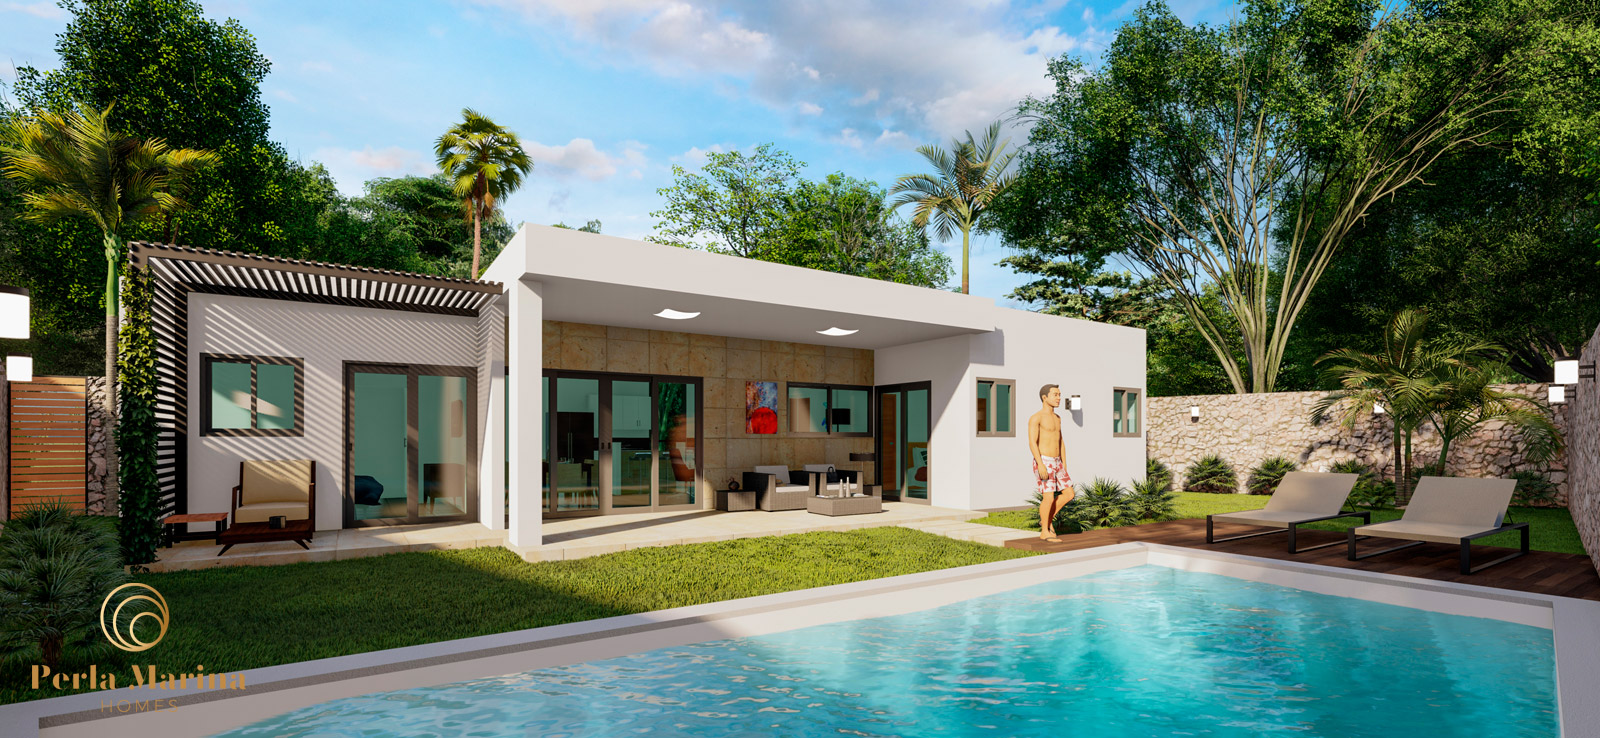 enjoy your own private pool that is included in your pre-sale villa